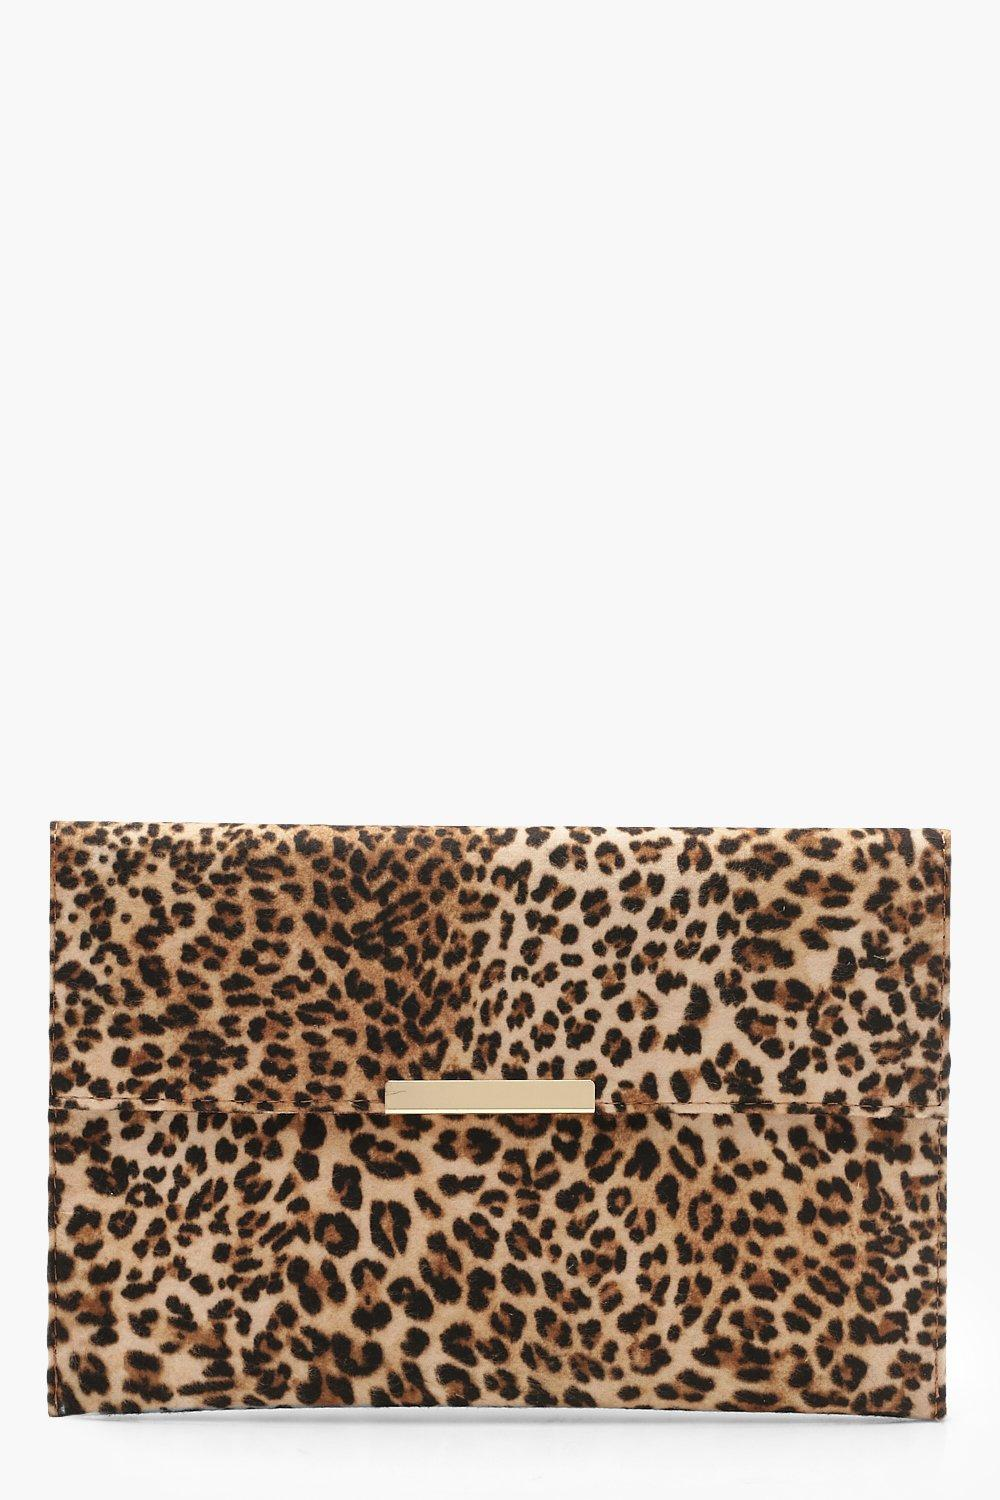 boohoo Womens Leopard Envelope Clutch Bag - Beige - One Size, Beige